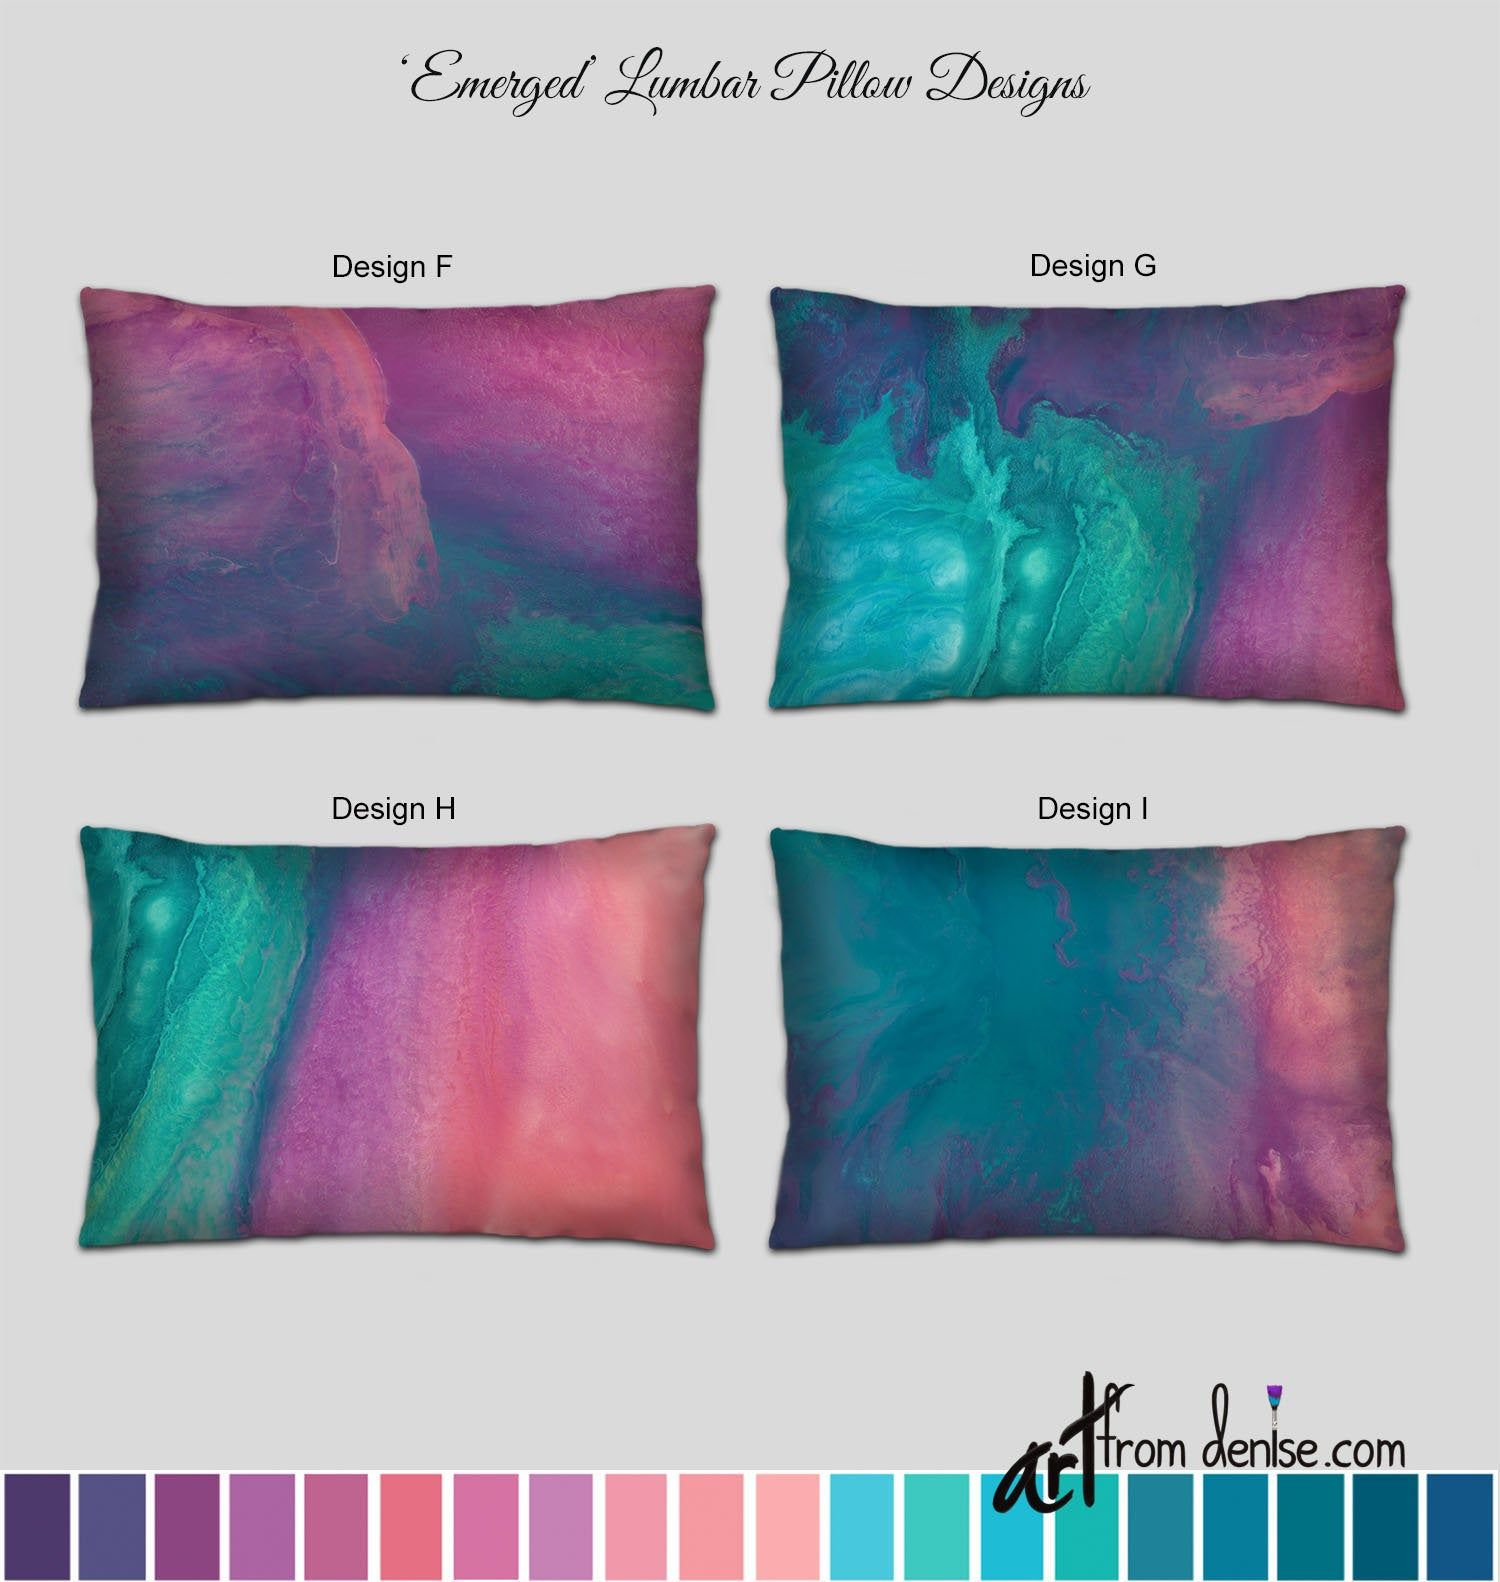 Coral Purple Turquoise And Teal Lumbar Pillow Colorful Abstract Throw Pillows For Bed Decor Or Outdoor L In 2020 Abstract Throw Pillow Throw Pillows Bed Throw Pillows